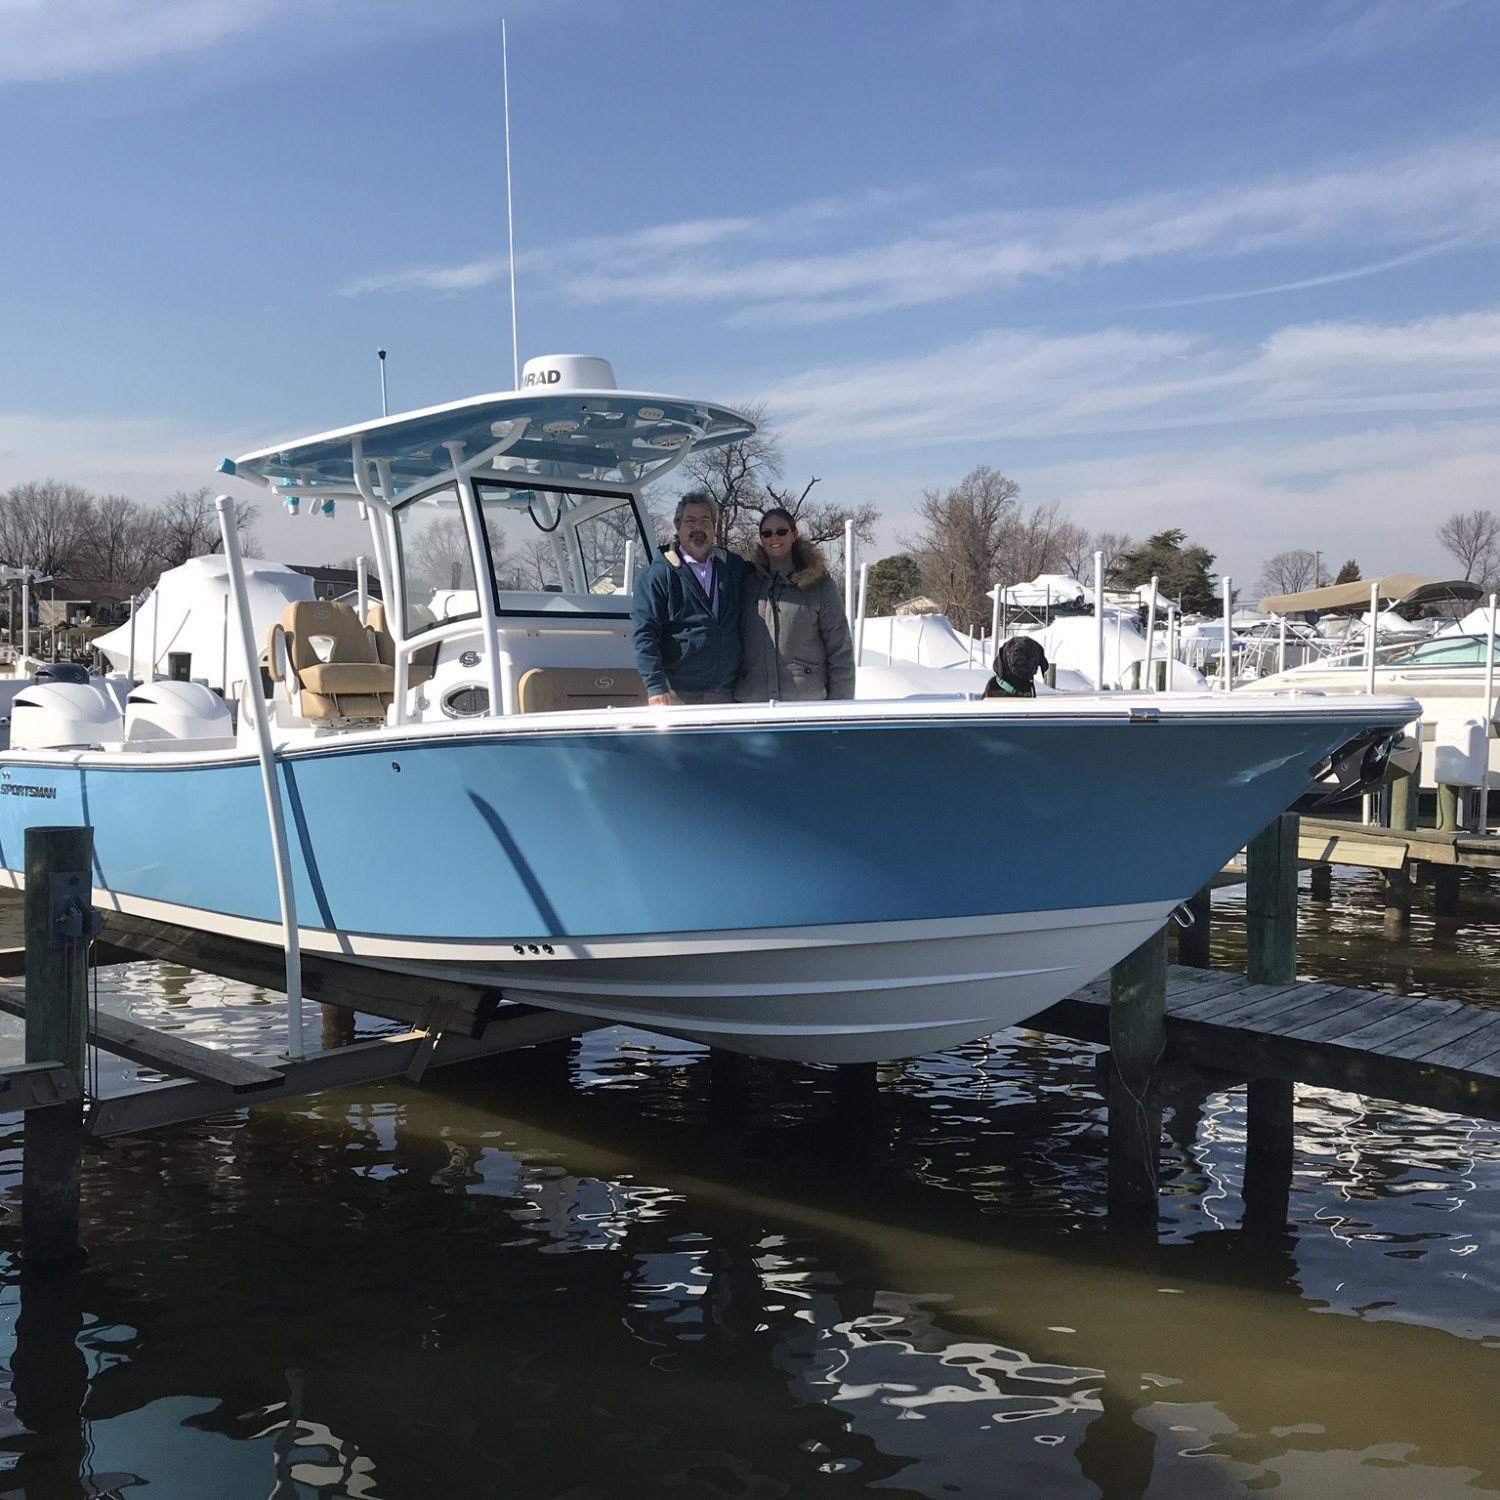 Title: Boat delivery - On board their Sportsman Open 282 Center Console - Location: Essex, md. Participating in the Photo Contest #SportsmanMarch2018